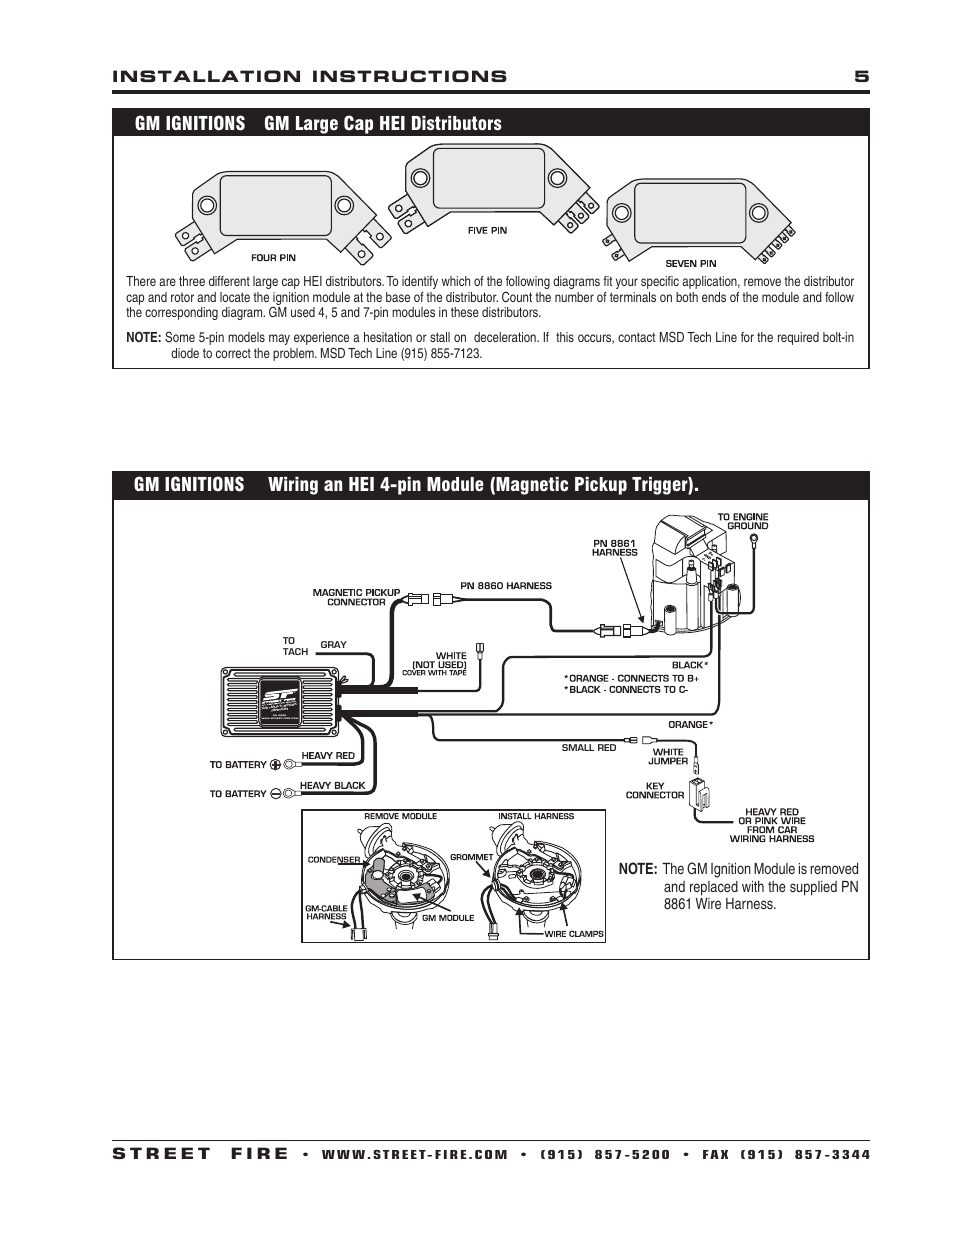 gm ignition control module wiring diagram as well msd heimsd 8861small resolution of gm ignitions gm [ 954 x 1235 Pixel ]